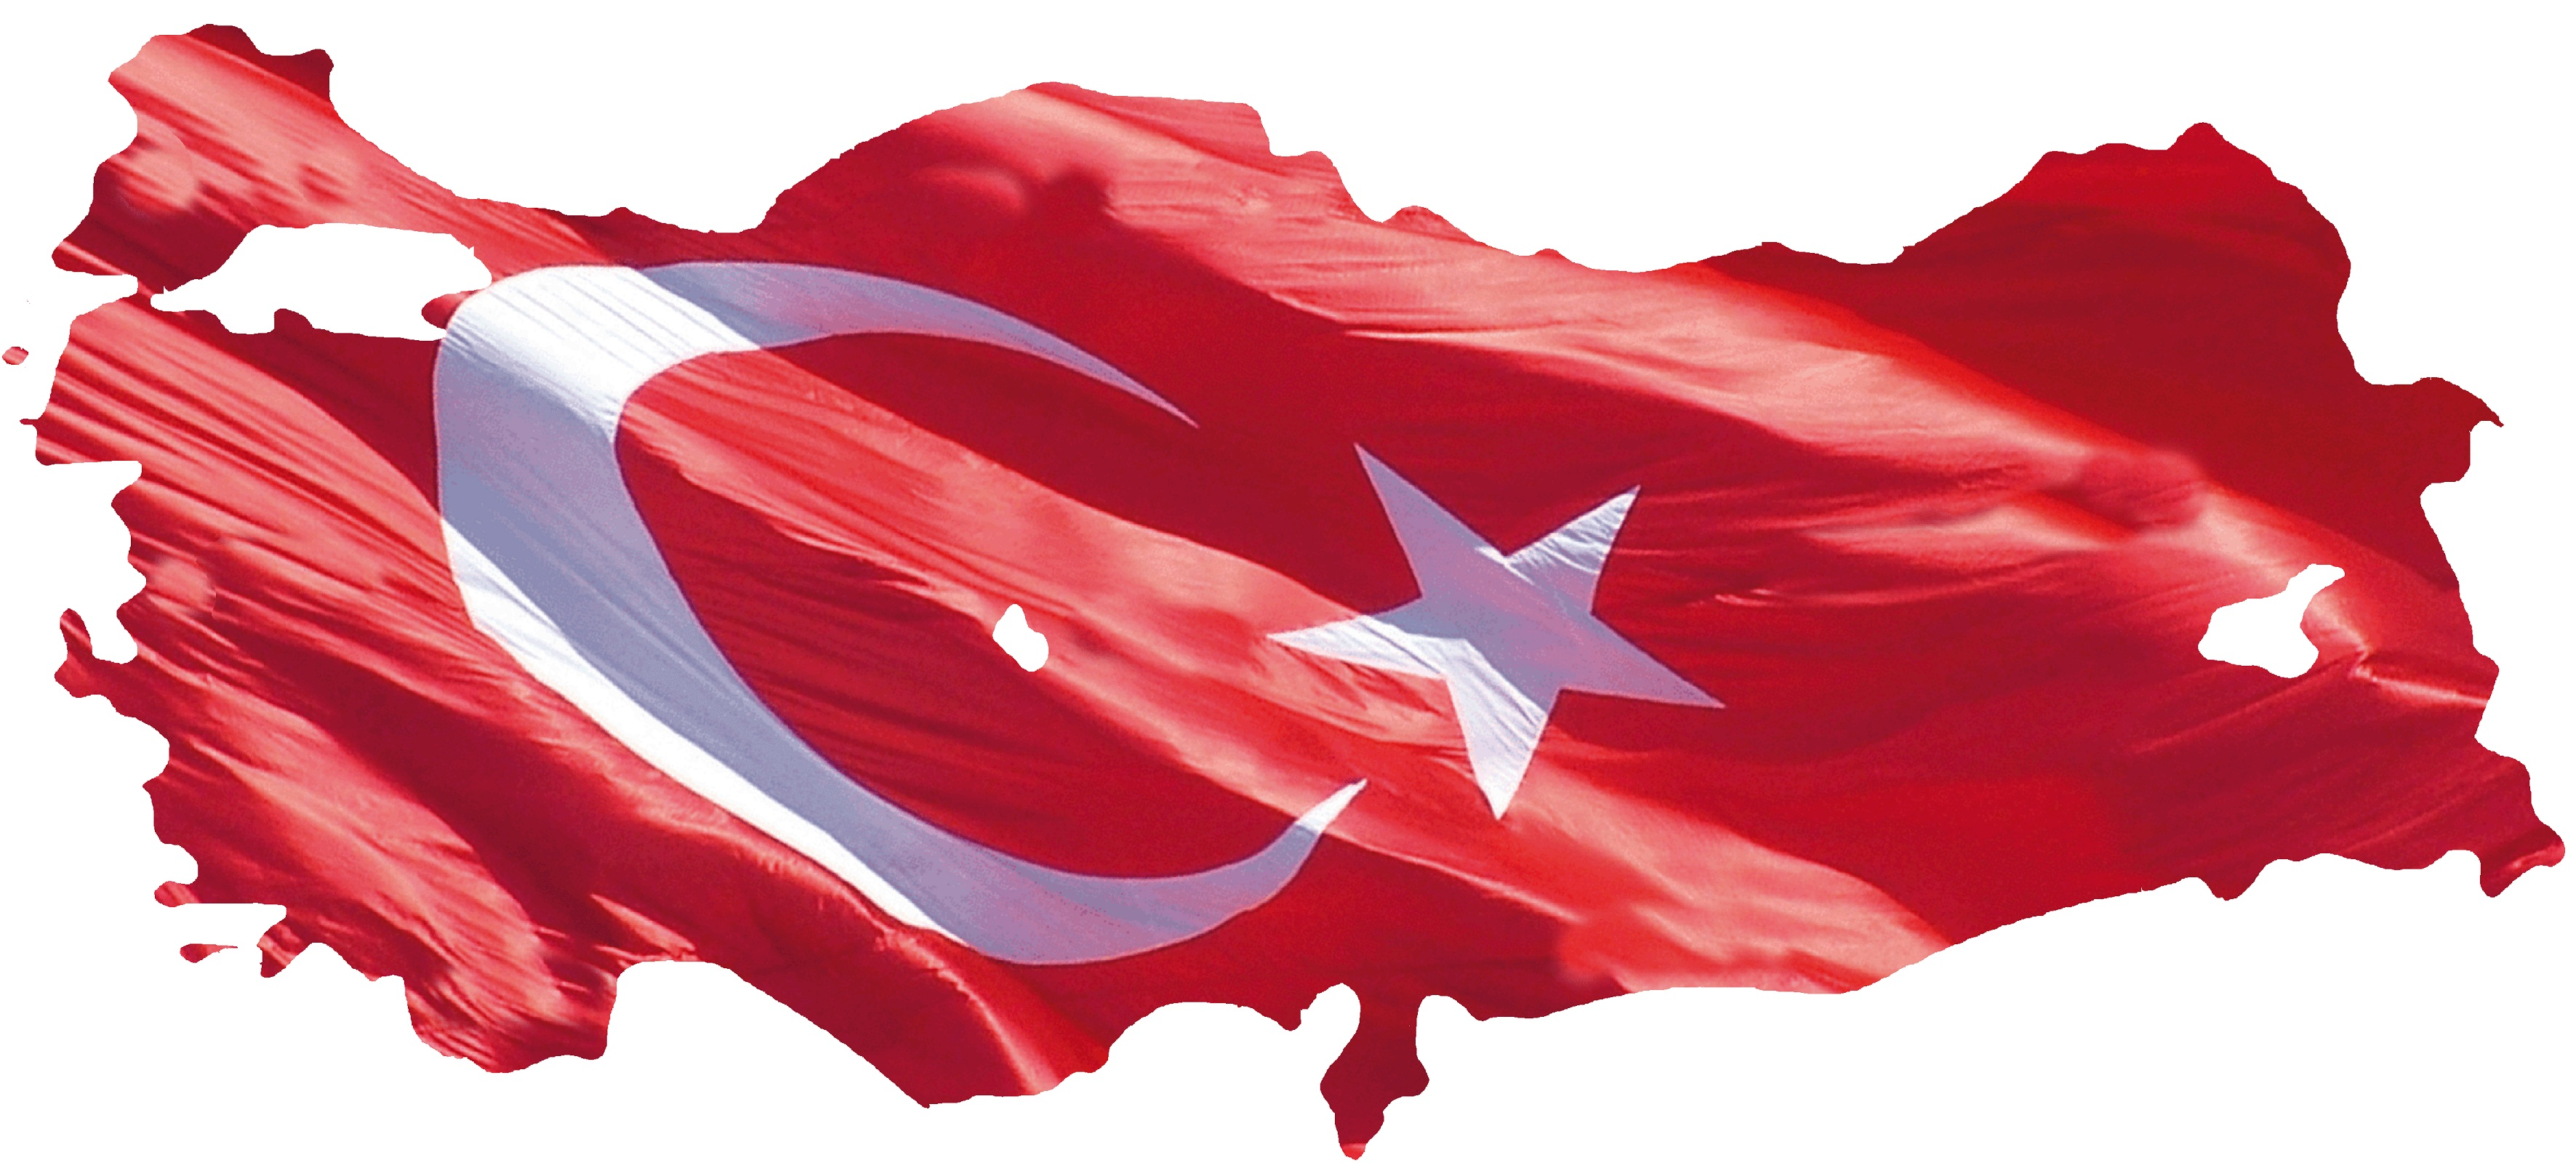 turkish-flag-waving-over-map-of-turkey.jpg